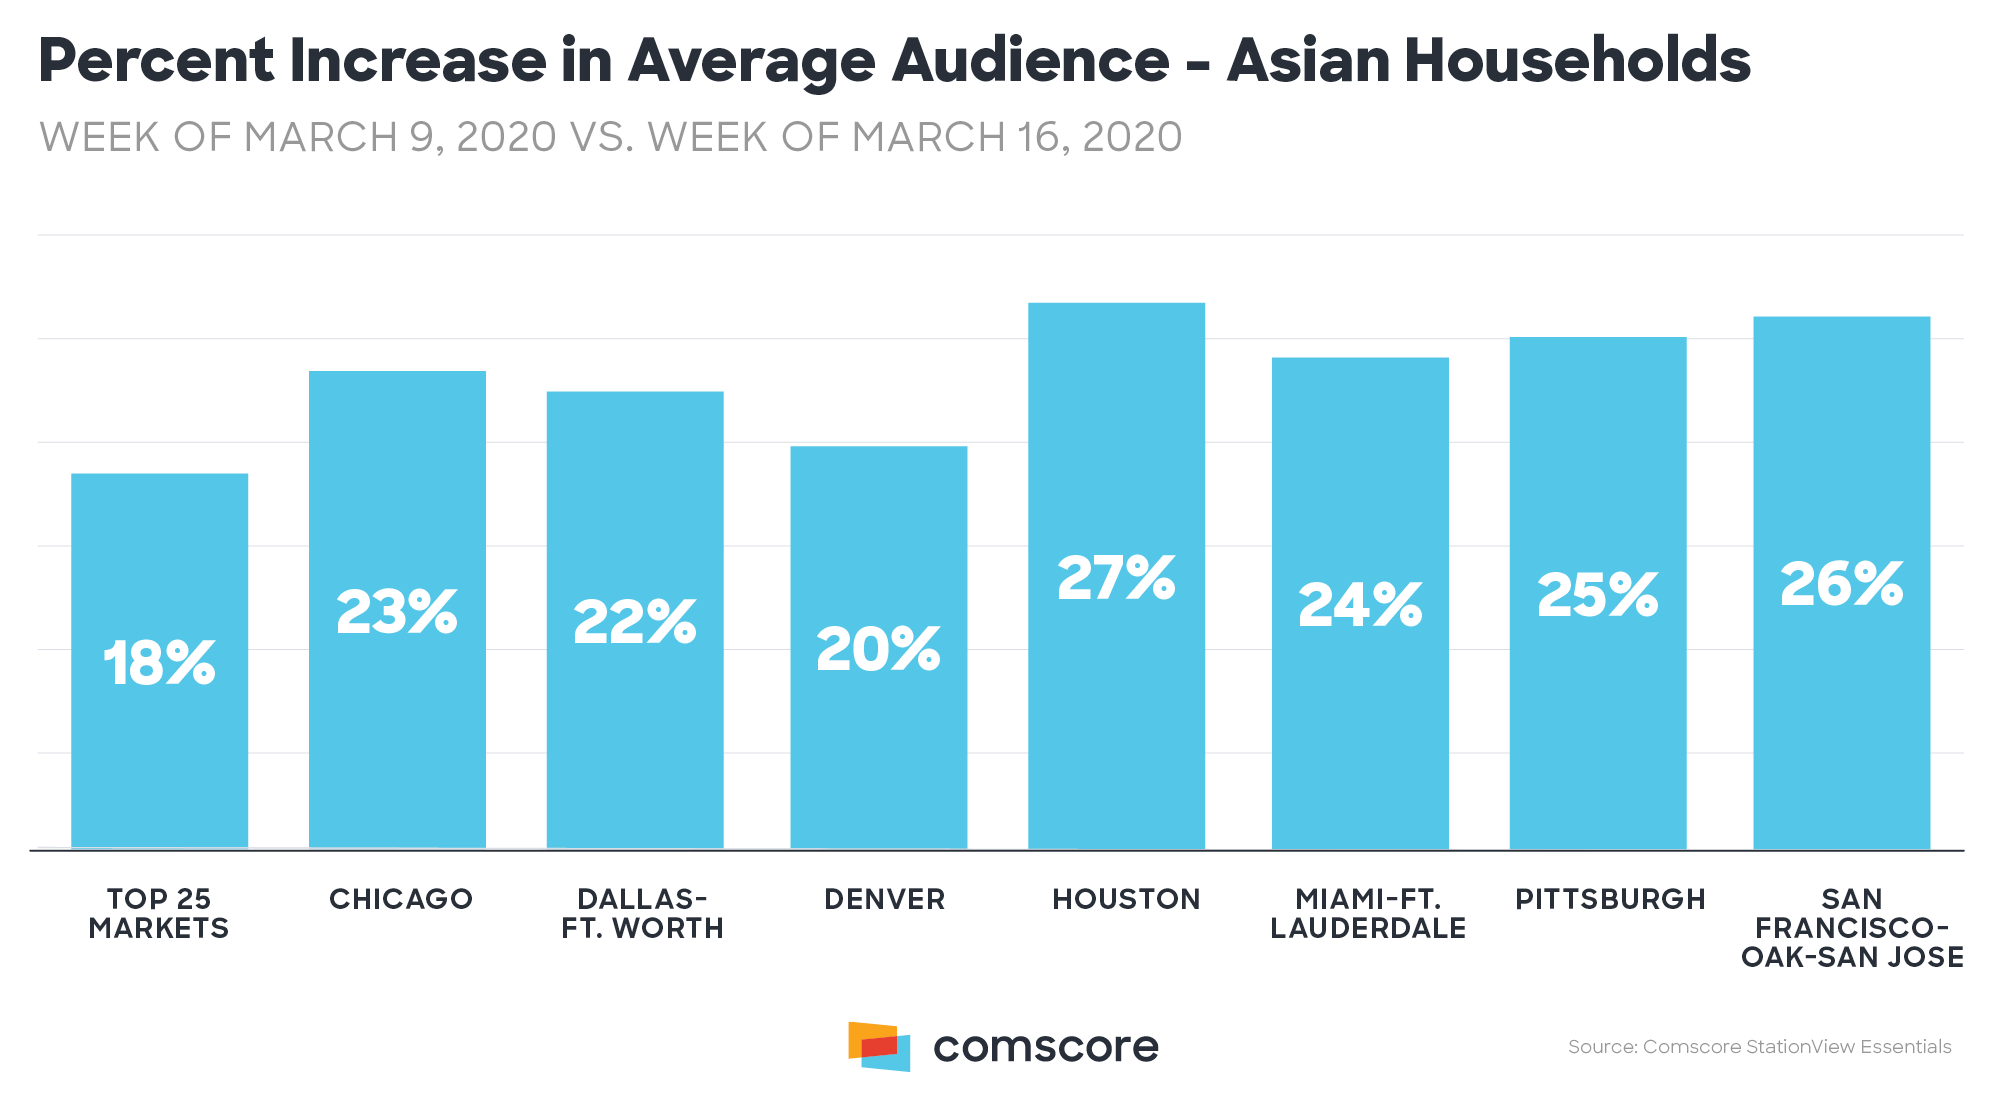 Coronavirus - TV viewing audience increase by Ethnicity - Asian Households